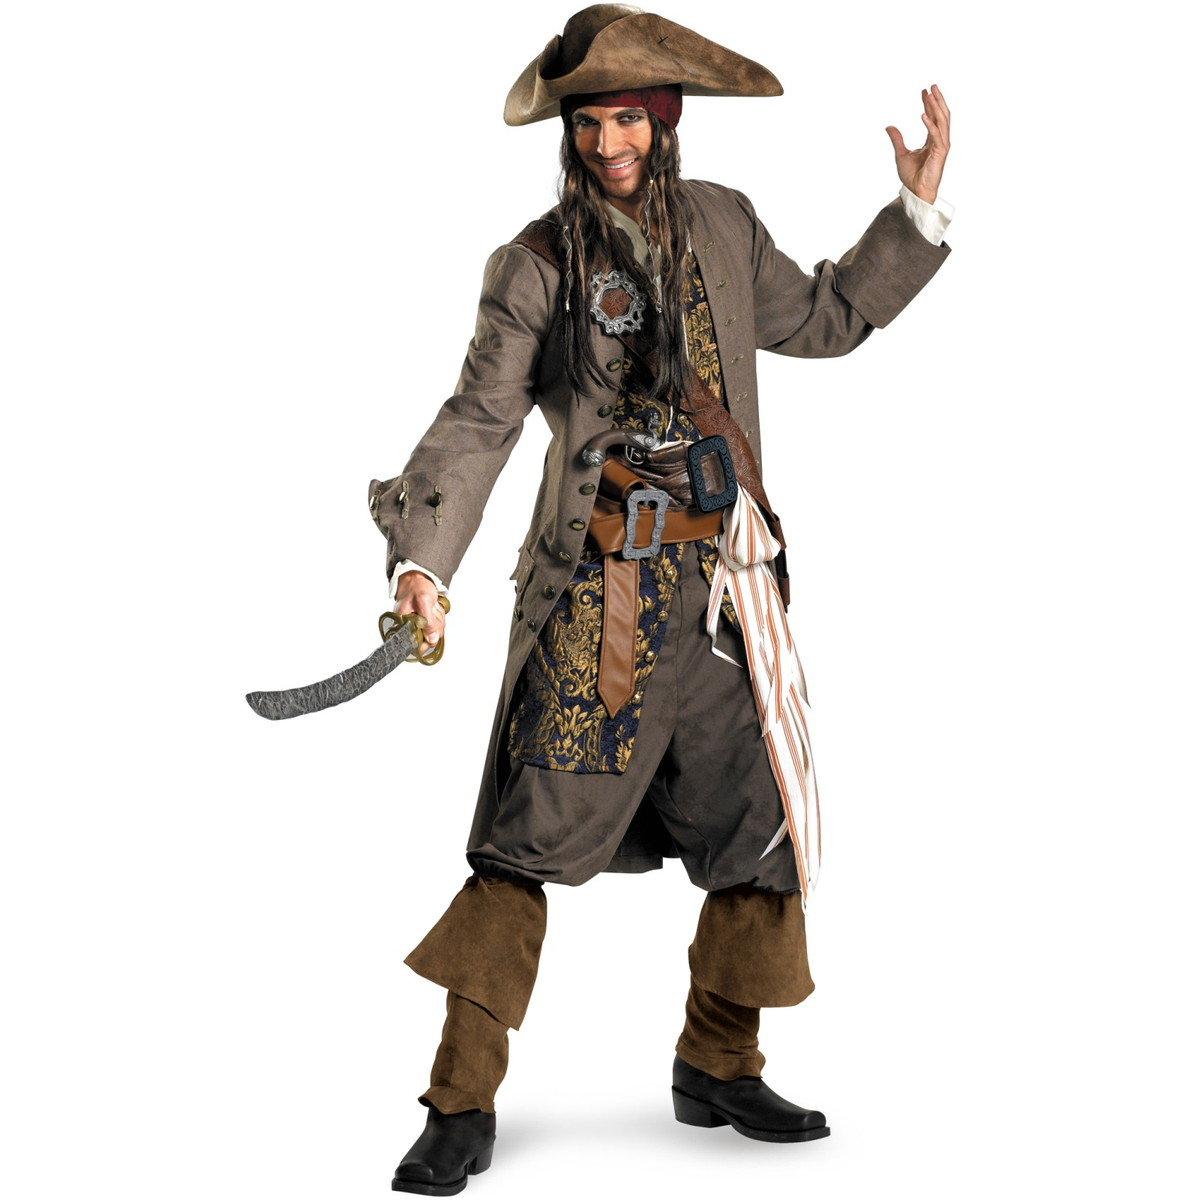 Jack Sparrow Costume Adult Pirates-of-Caribbean official official cosplay costume-adult theater edition Halloween costumes  sc 1 st  Rakuten & acomes | Rakuten Global Market: Jack Sparrow Costume Adult Pirates ...